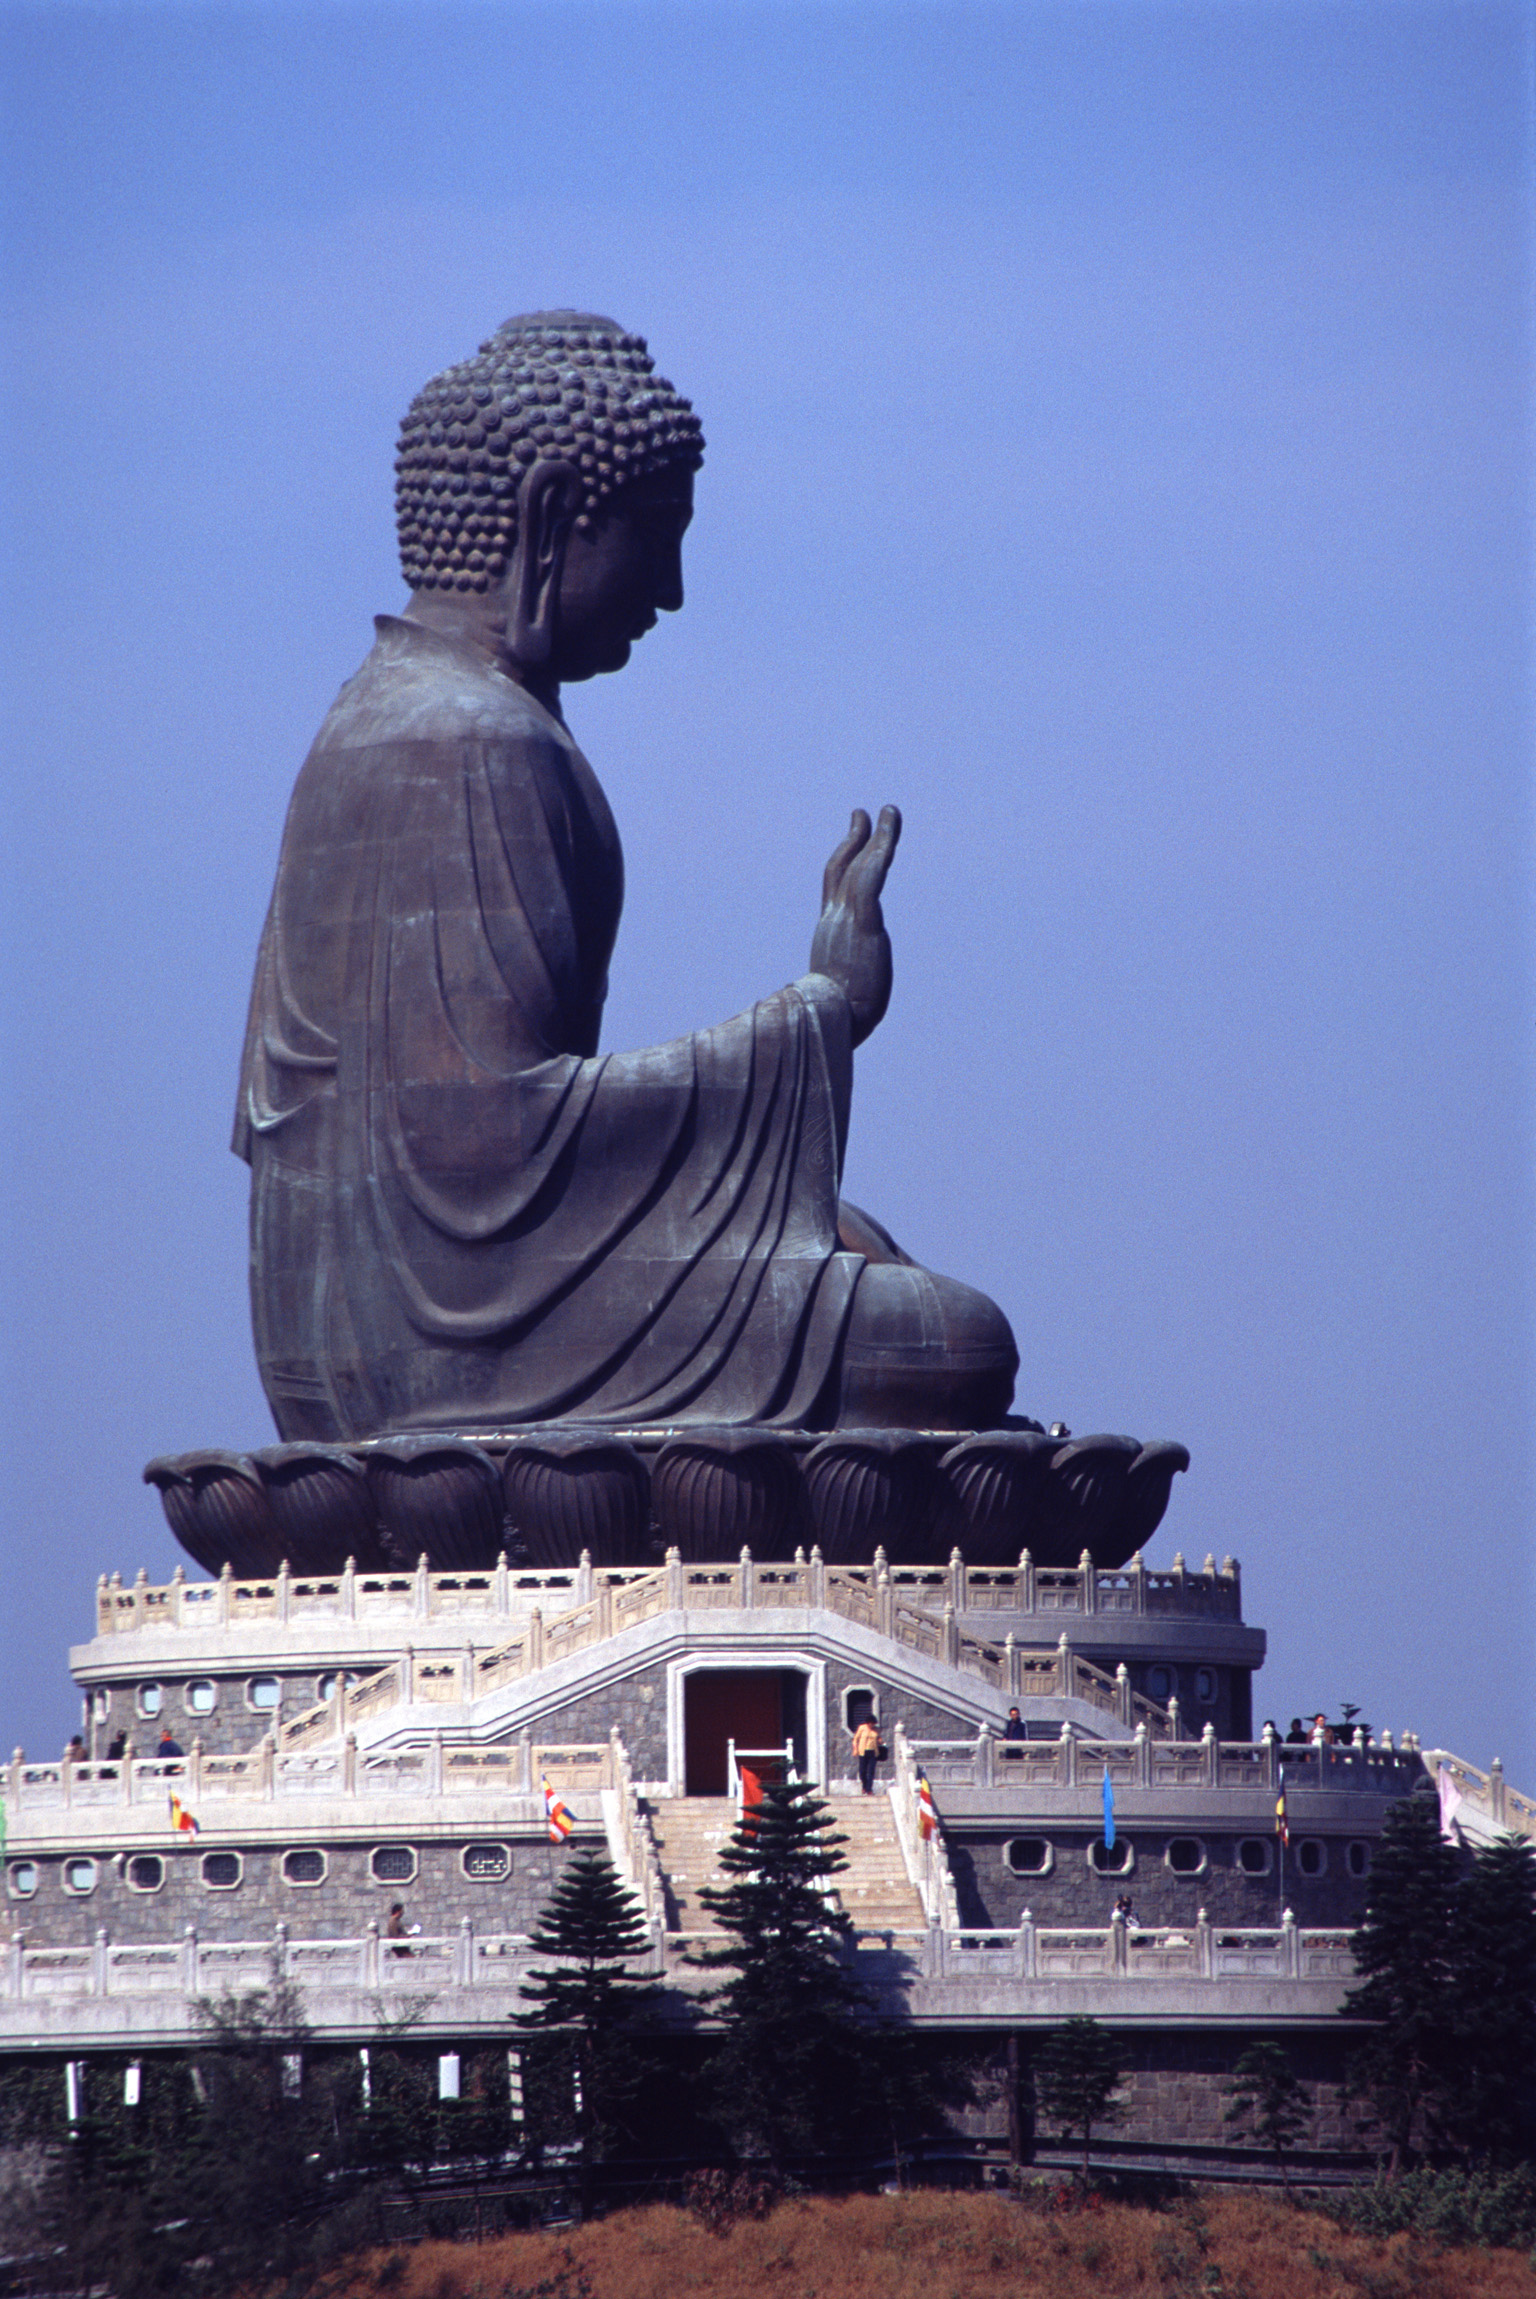 Big Buddha statue, Hong Kong, Tian Tan Buddha, also known as the Big Buddha, is a large bronze statue of a Buddha Amoghasiddhi situated on a moutain peak above the monastery on Lantau Island